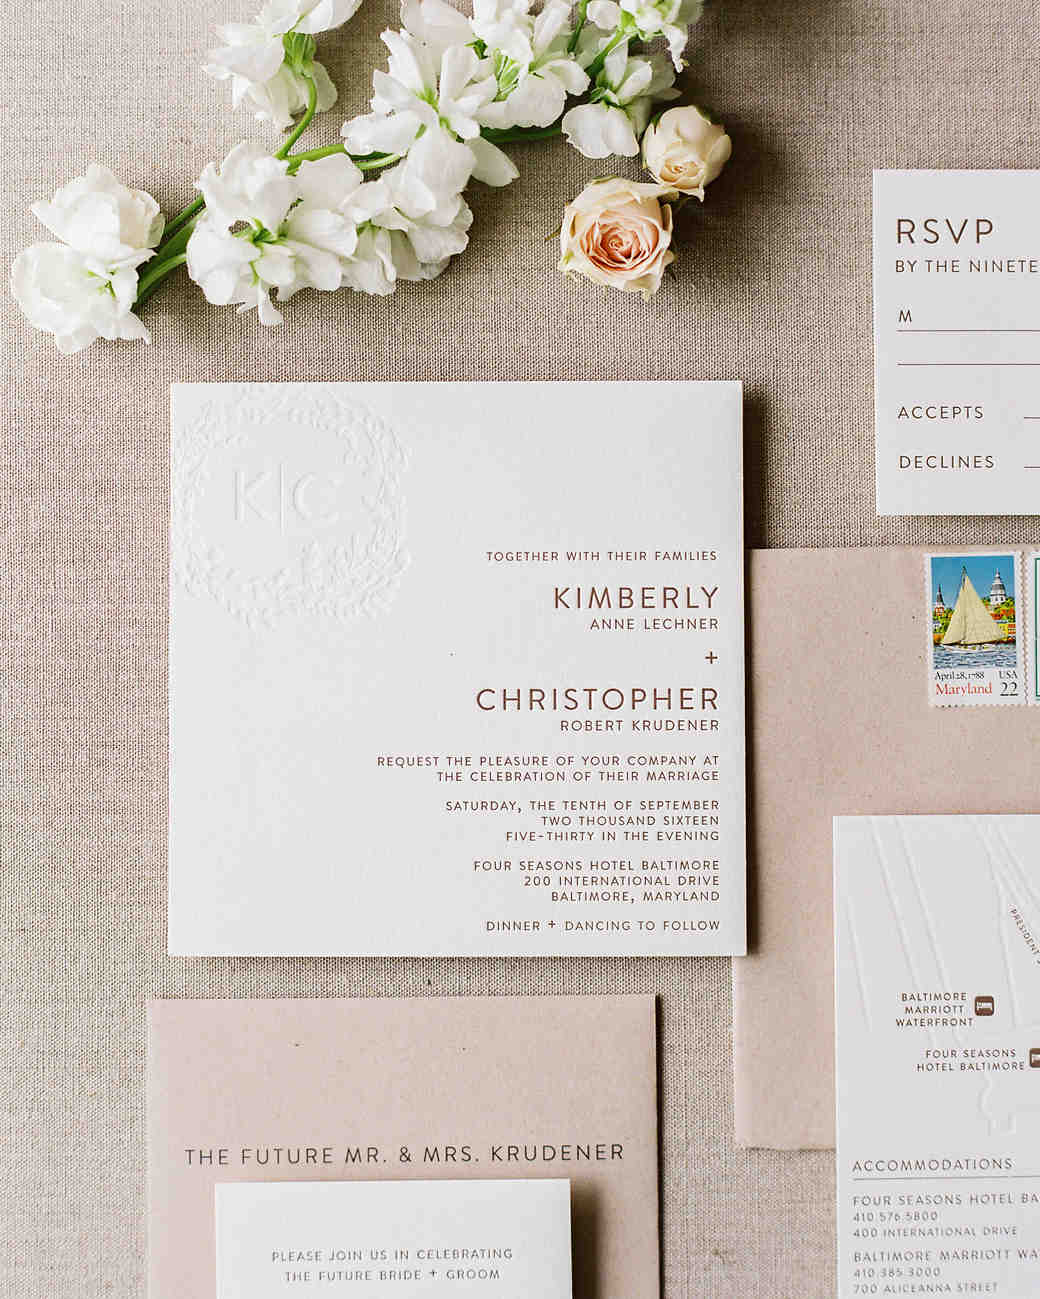 Delightful Paper Protocol: Experts Share Their Best Wedding Invitation Advice | Martha  Stewart Weddings Design